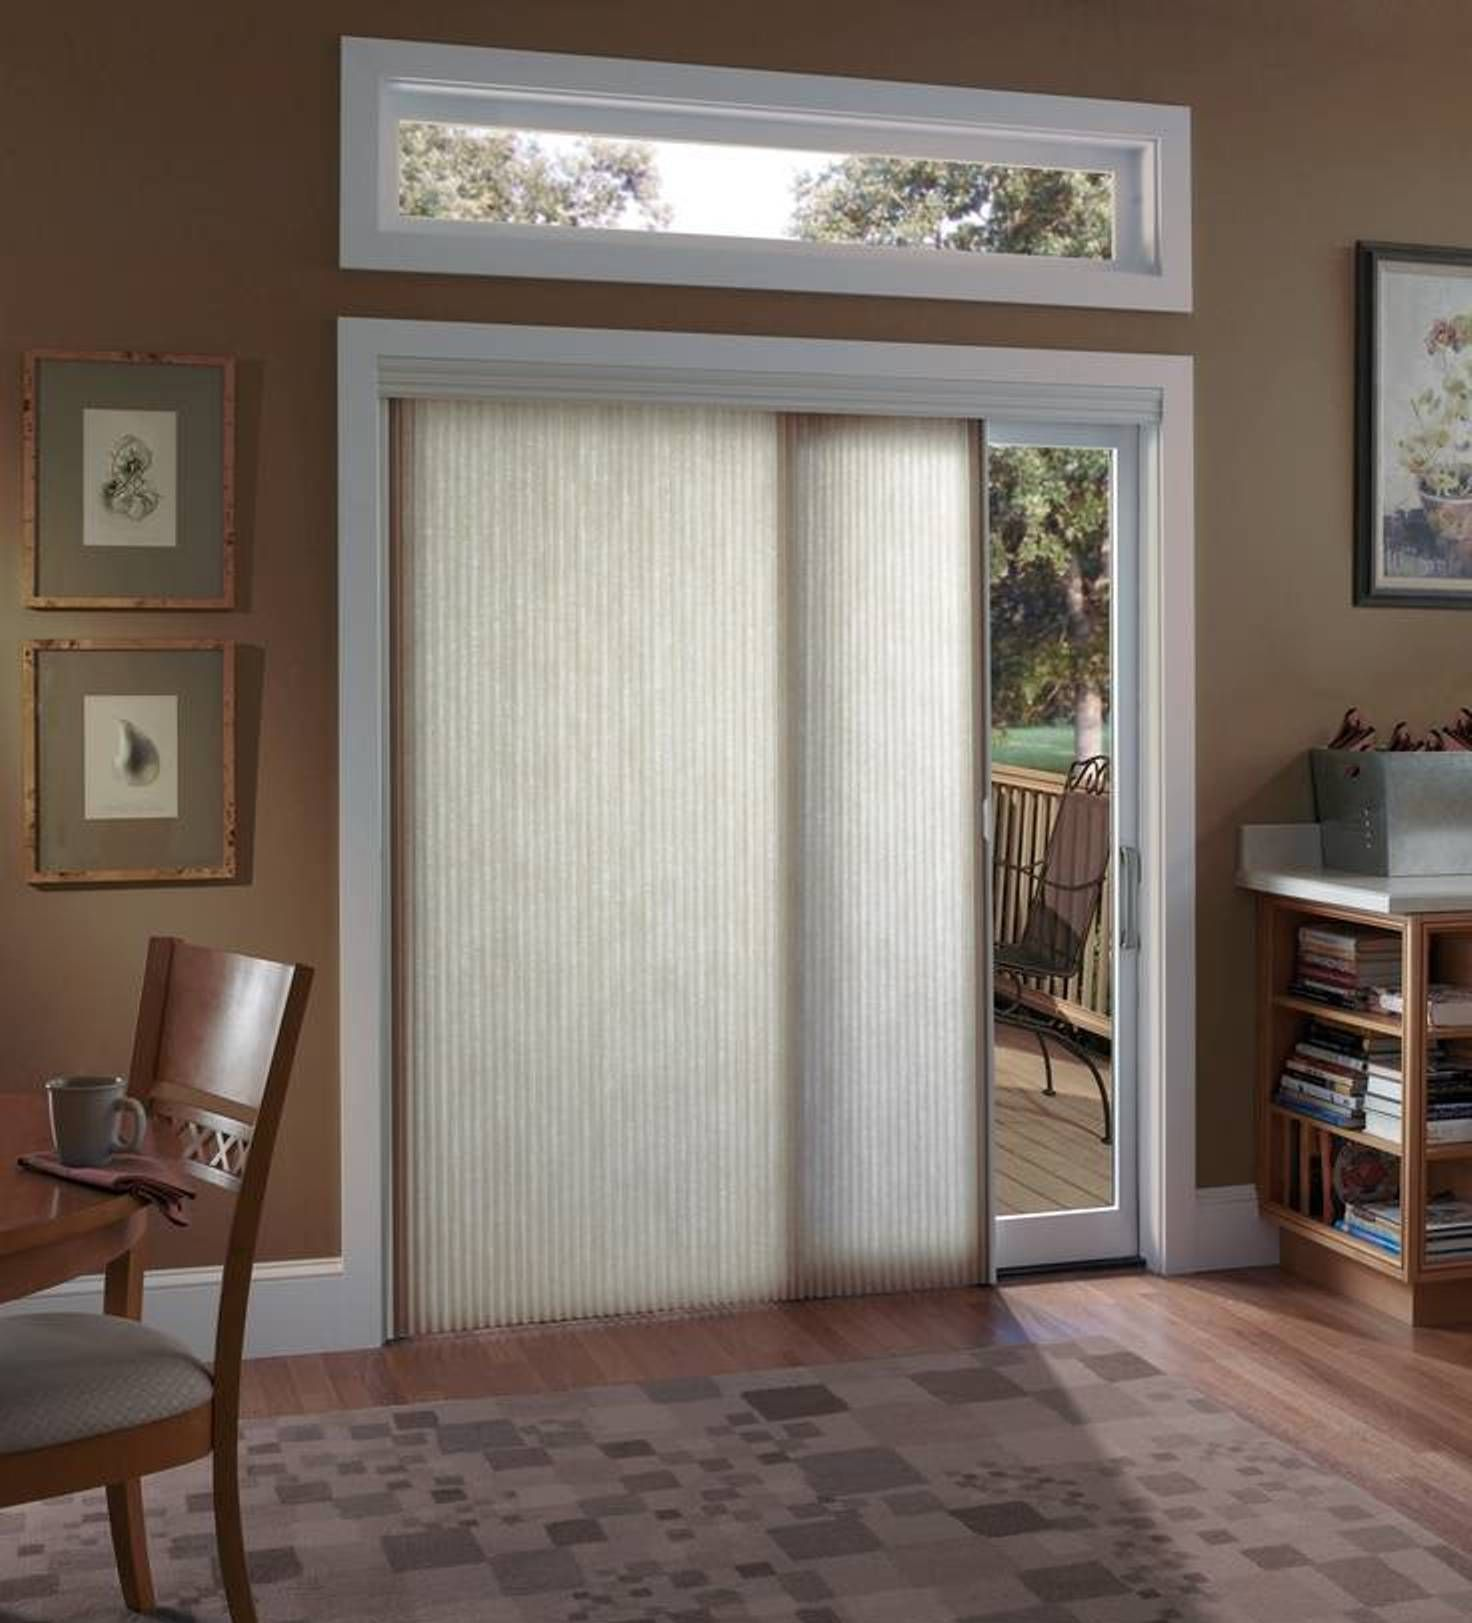 Drapes For Sliding Glass Doors Https://www.educationalequipment.com/k  Curtains For Sliding Glass Doors